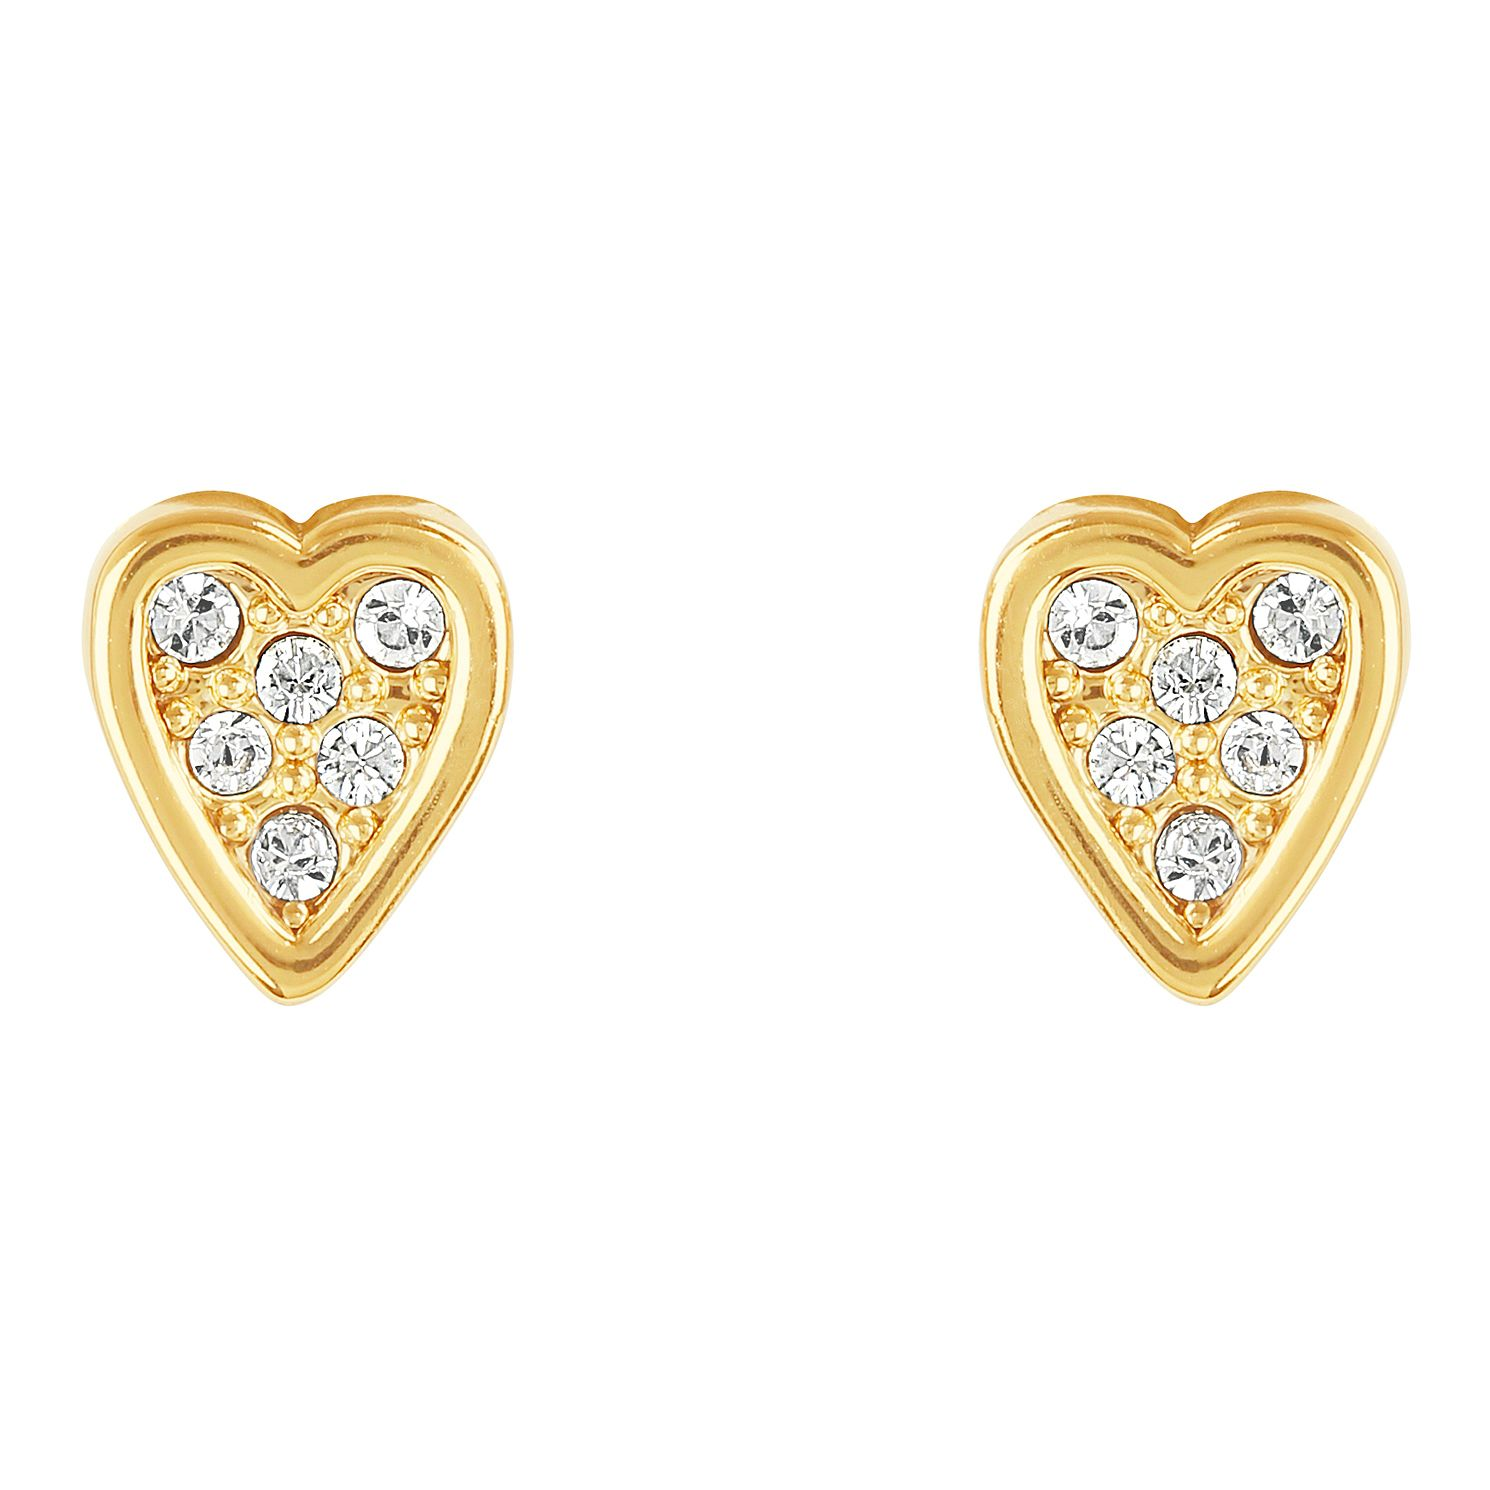 Adore Mini Pave Gold Plated Heart Crystal Stud Earrings - Product number 4475216